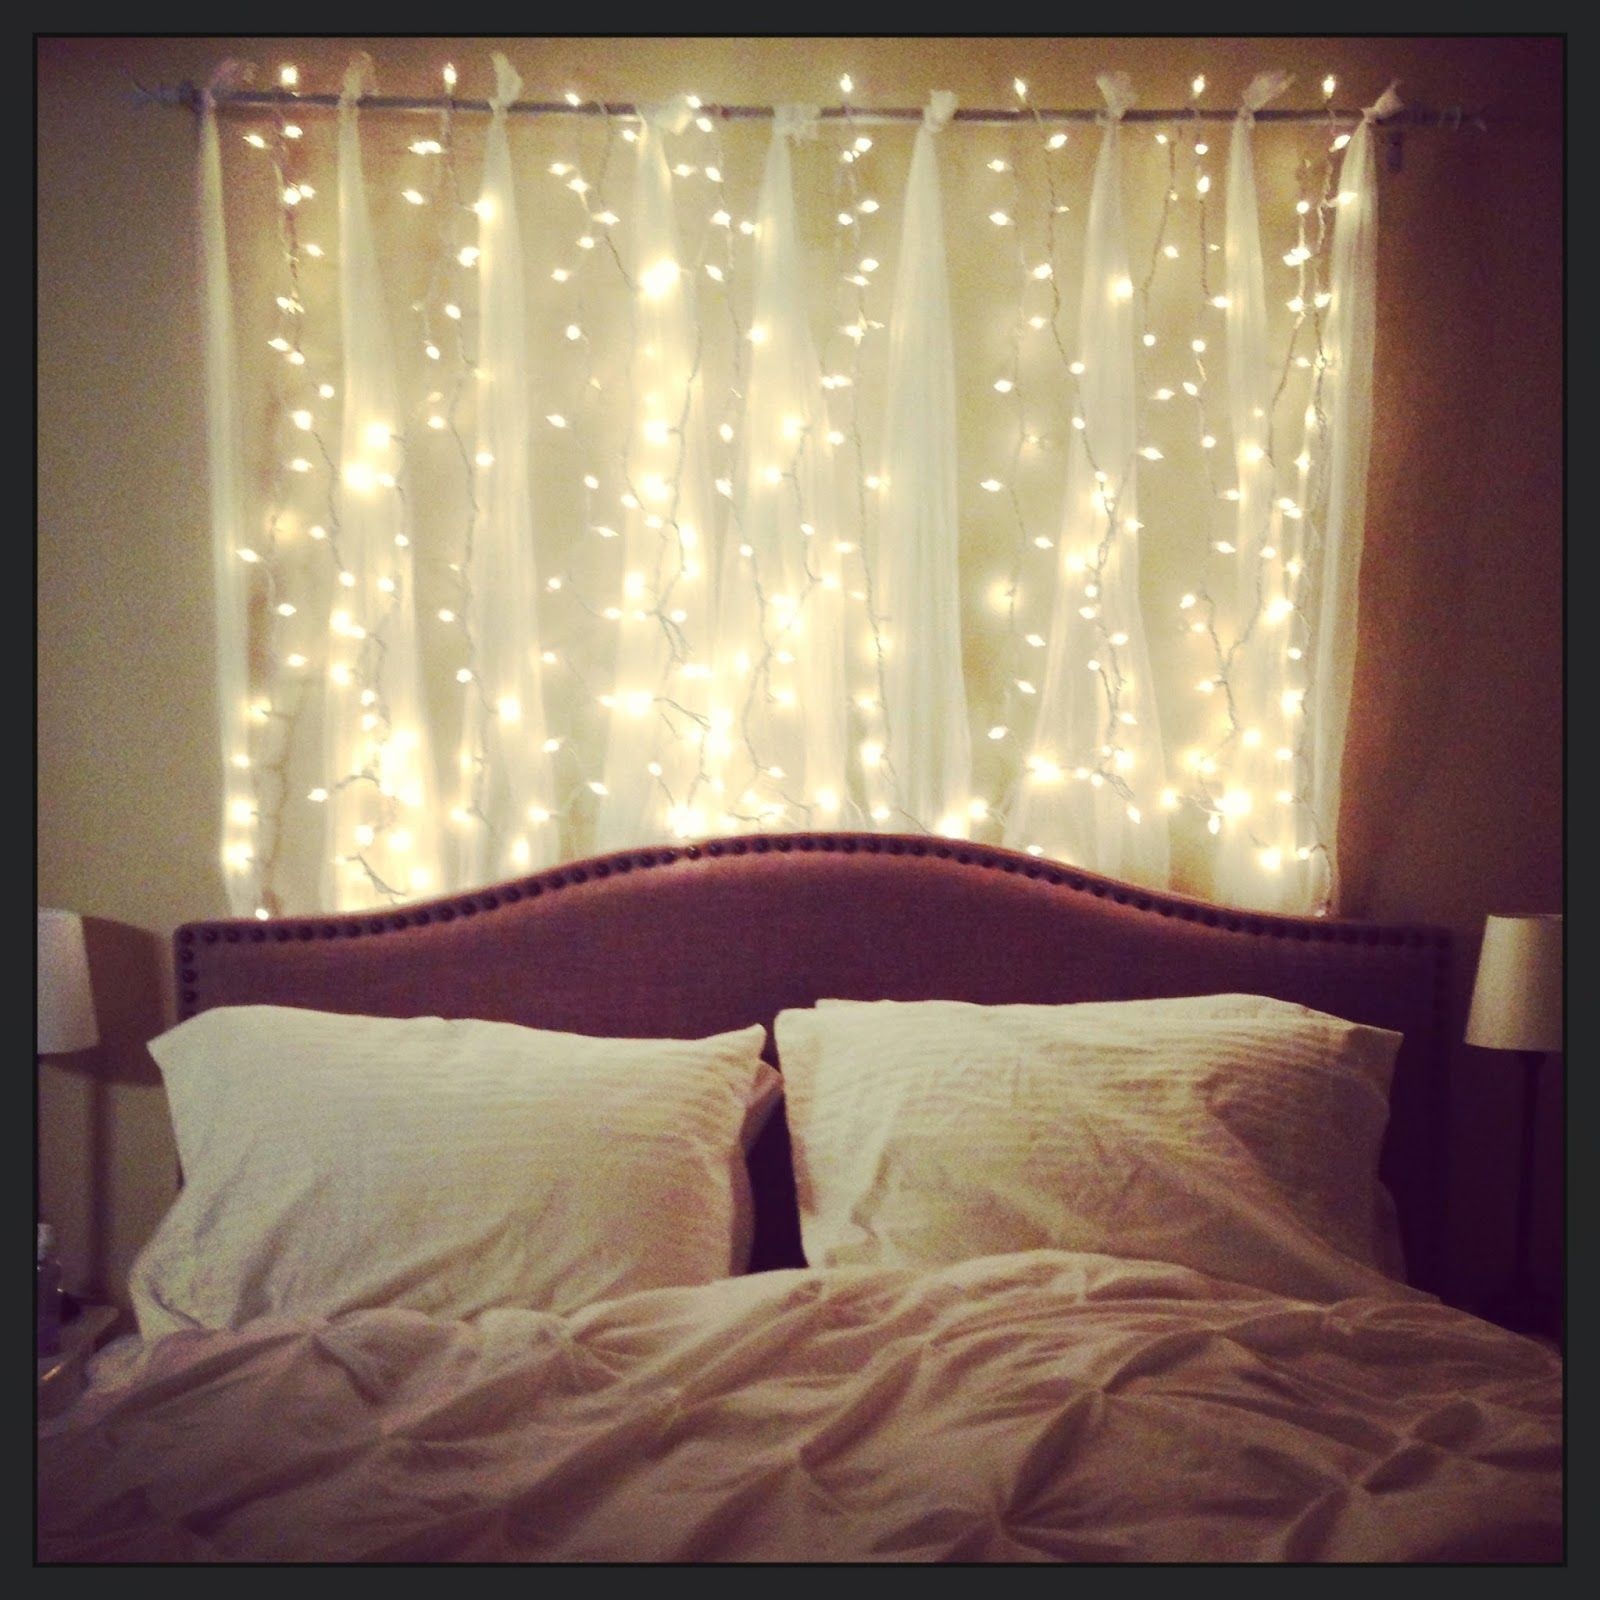 Canopy bed with lights - Headboard With Lovely Strings Of Lights Bedroom Decorations A Lovely And Beautiful Array Of Sparkling String Lights For Bedroom In Order To Pursue The